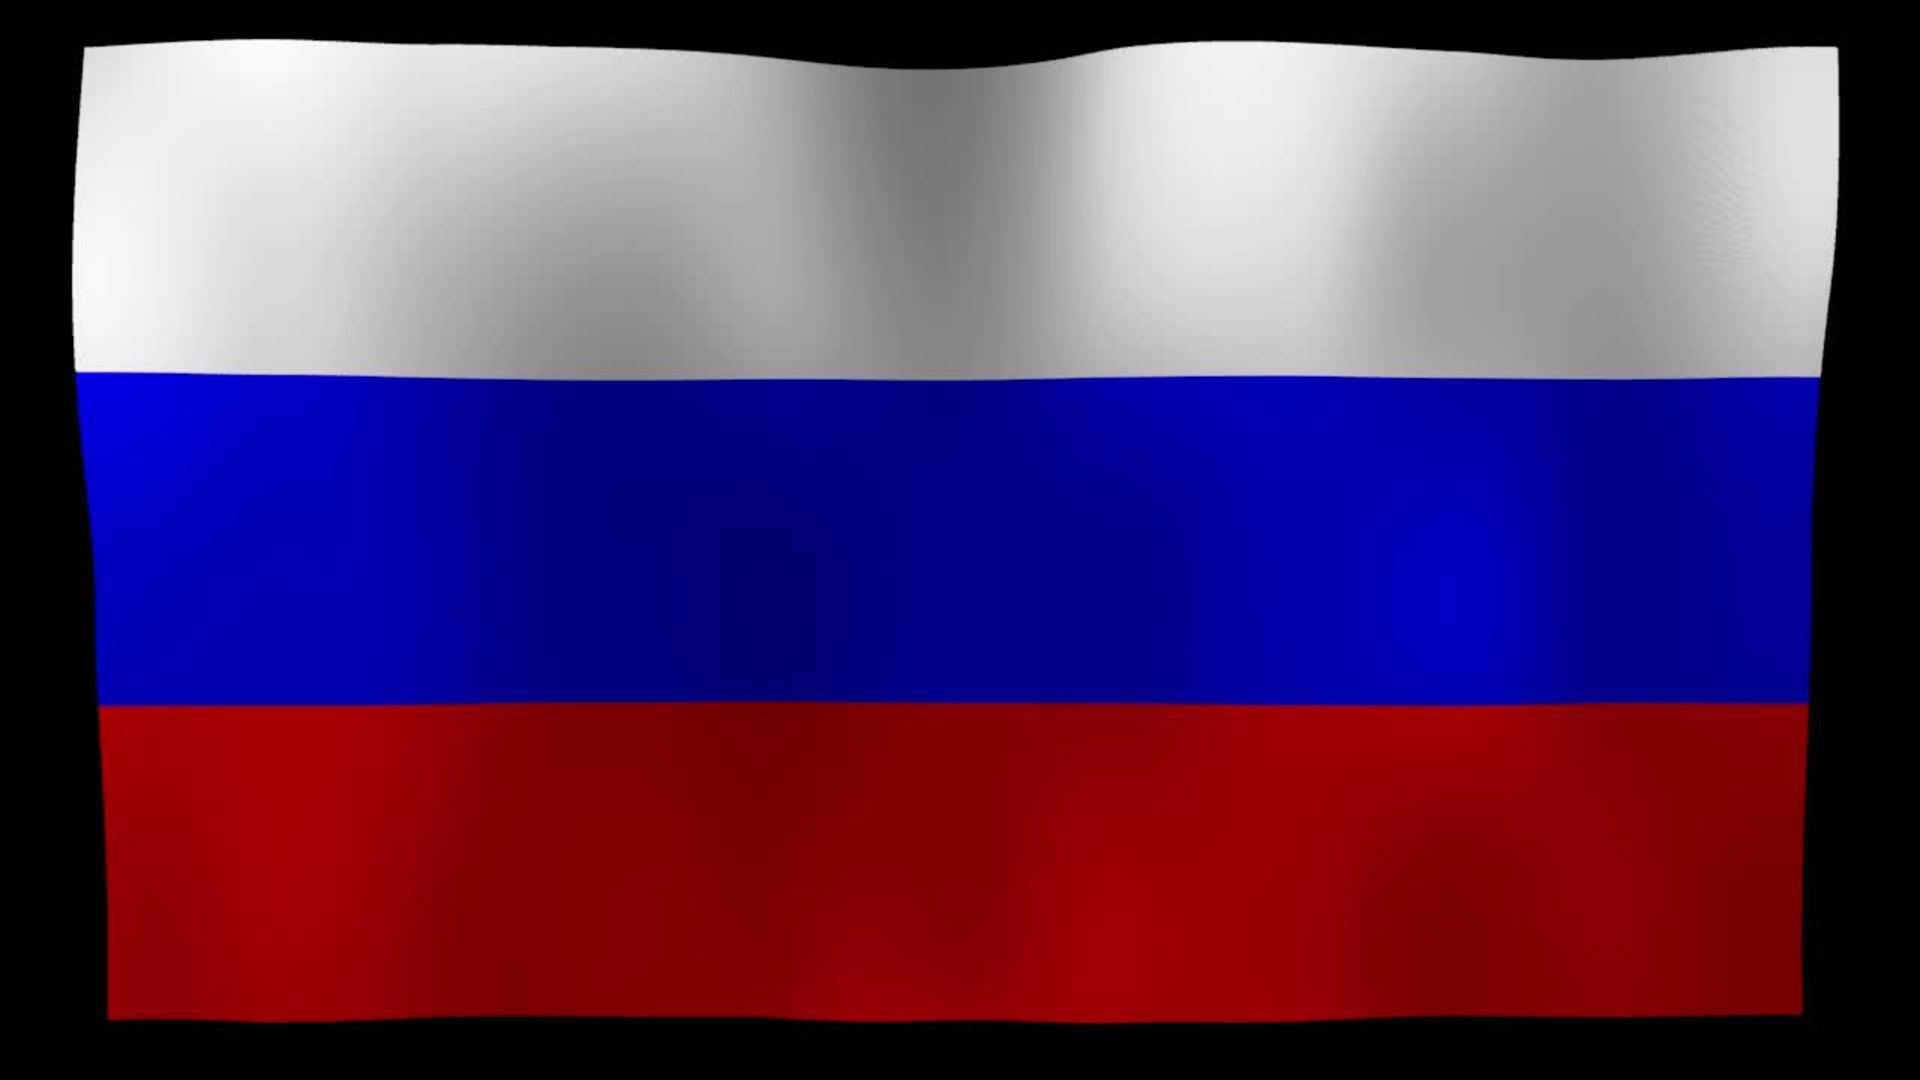 Russia Flag 4k Motion Loop After Effects Template Free Hd Video